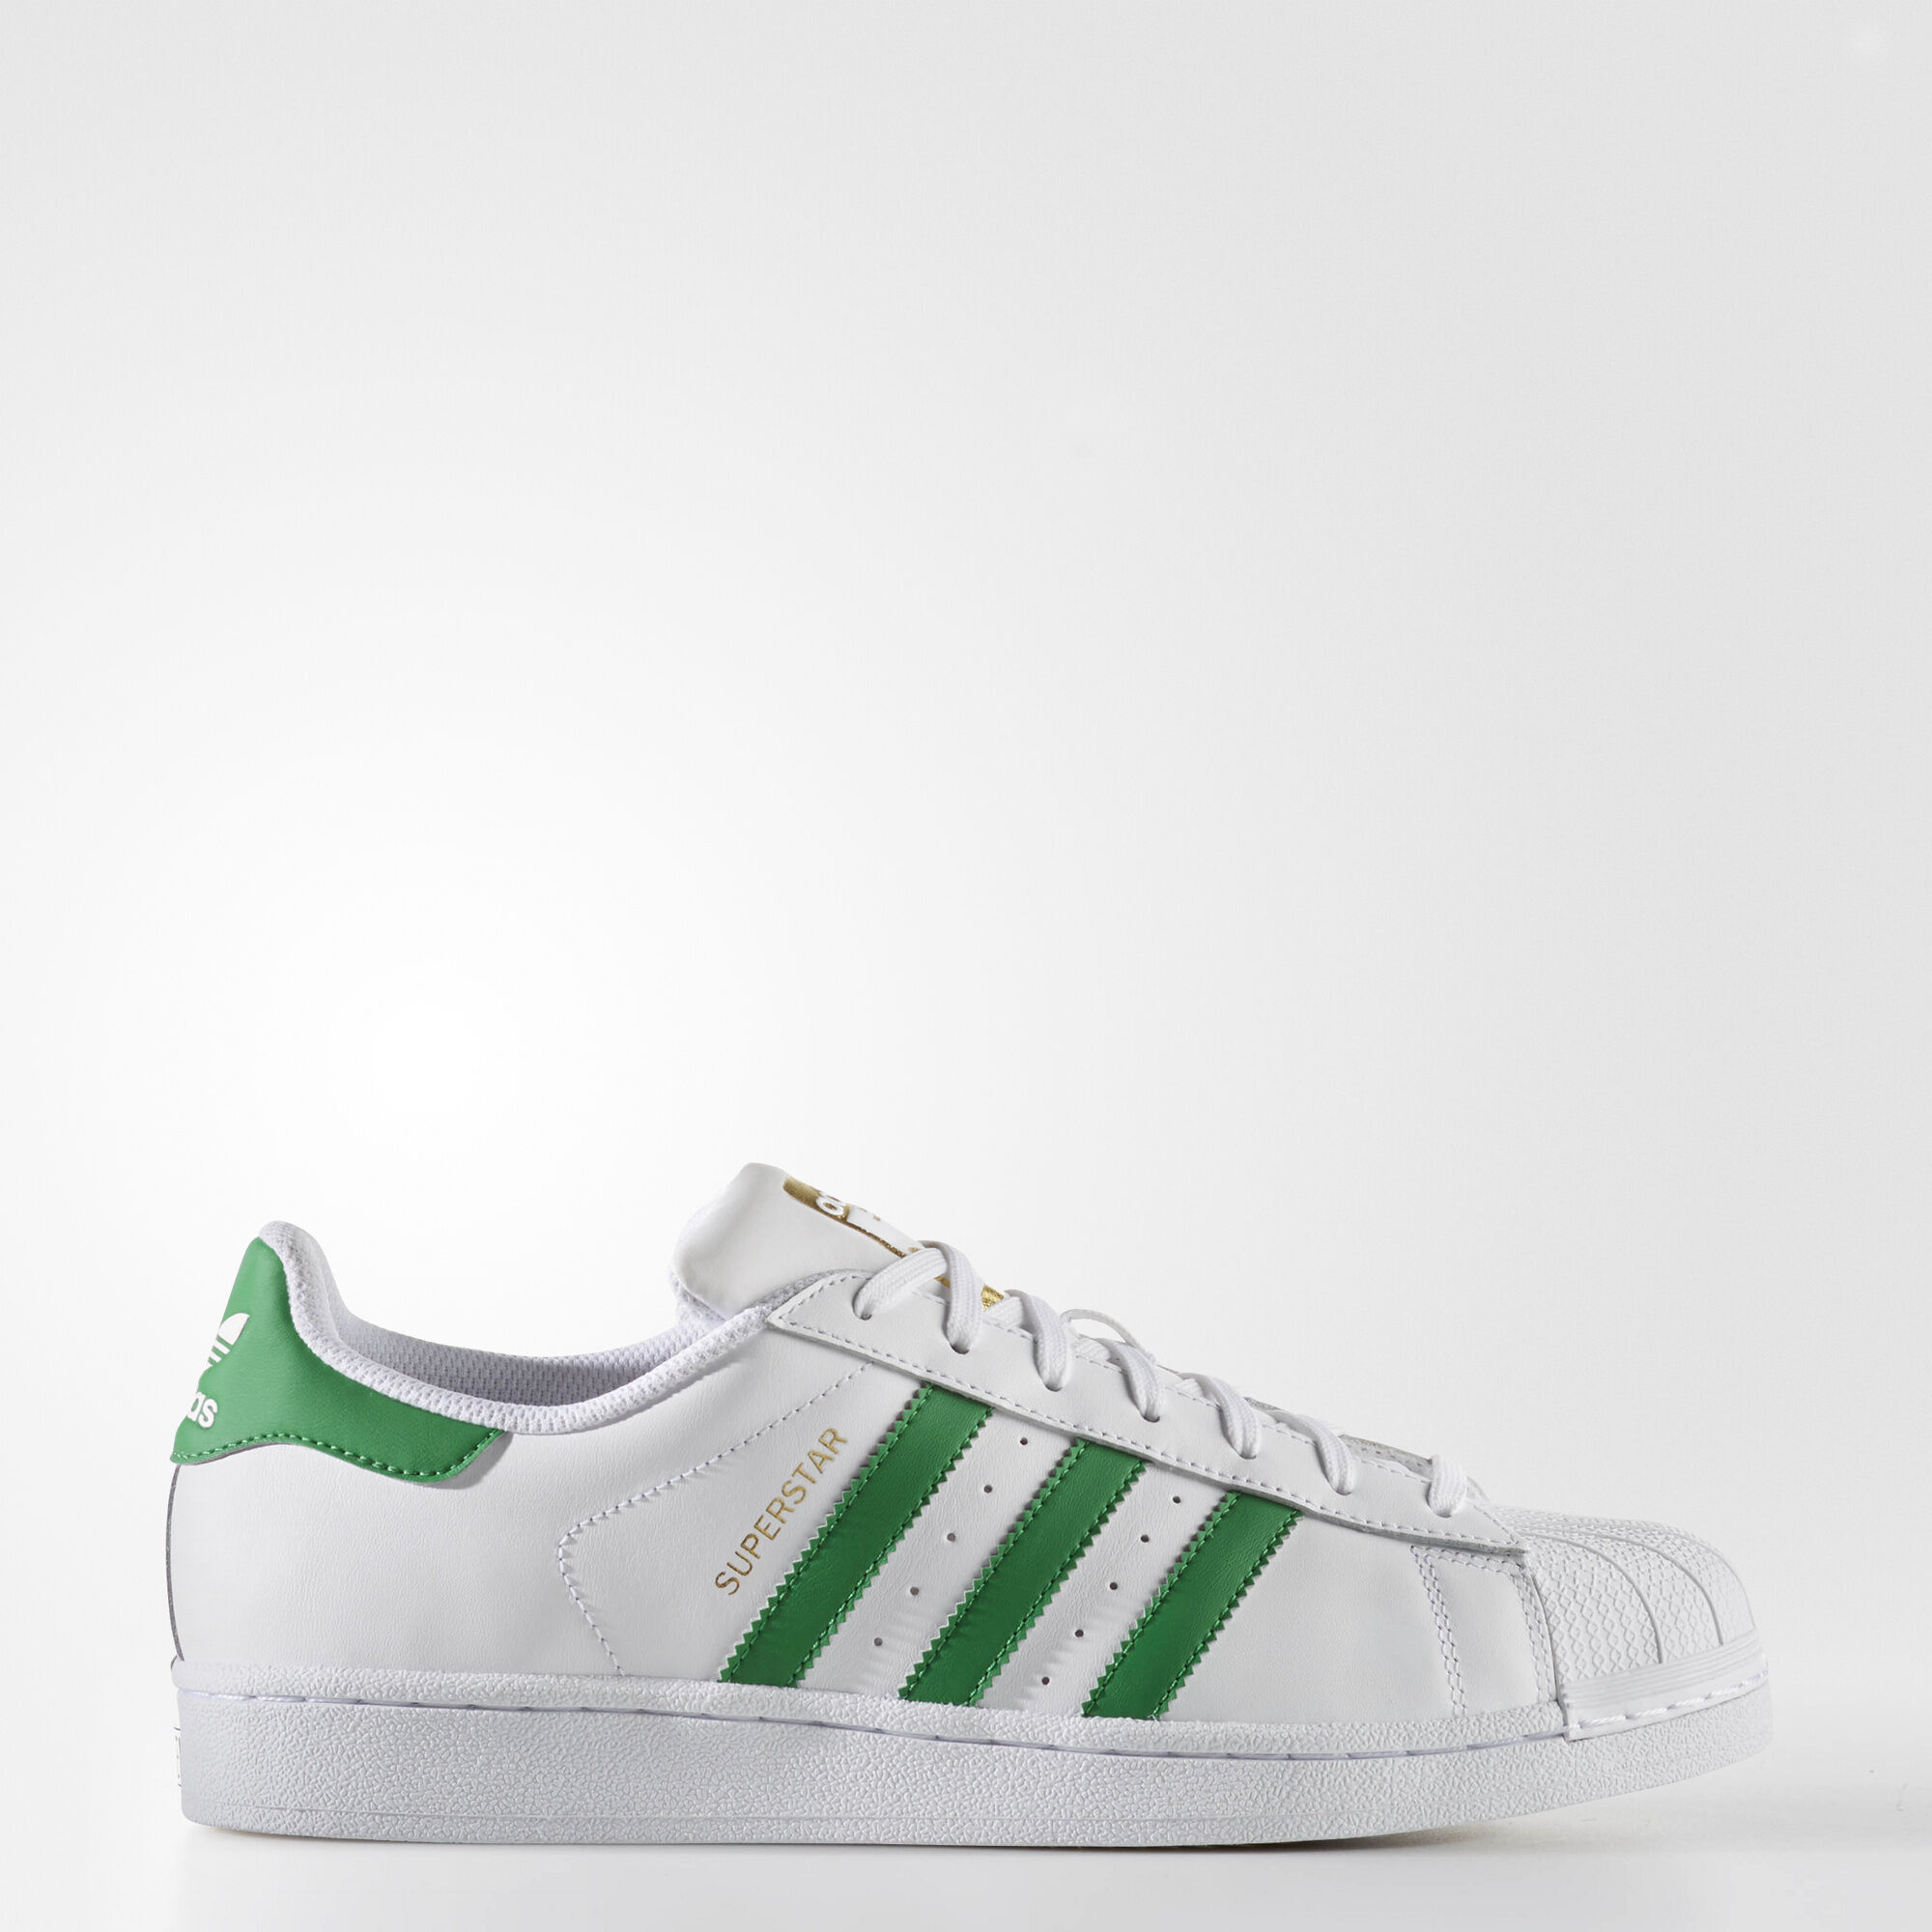 Adidas Shoes Gold And White